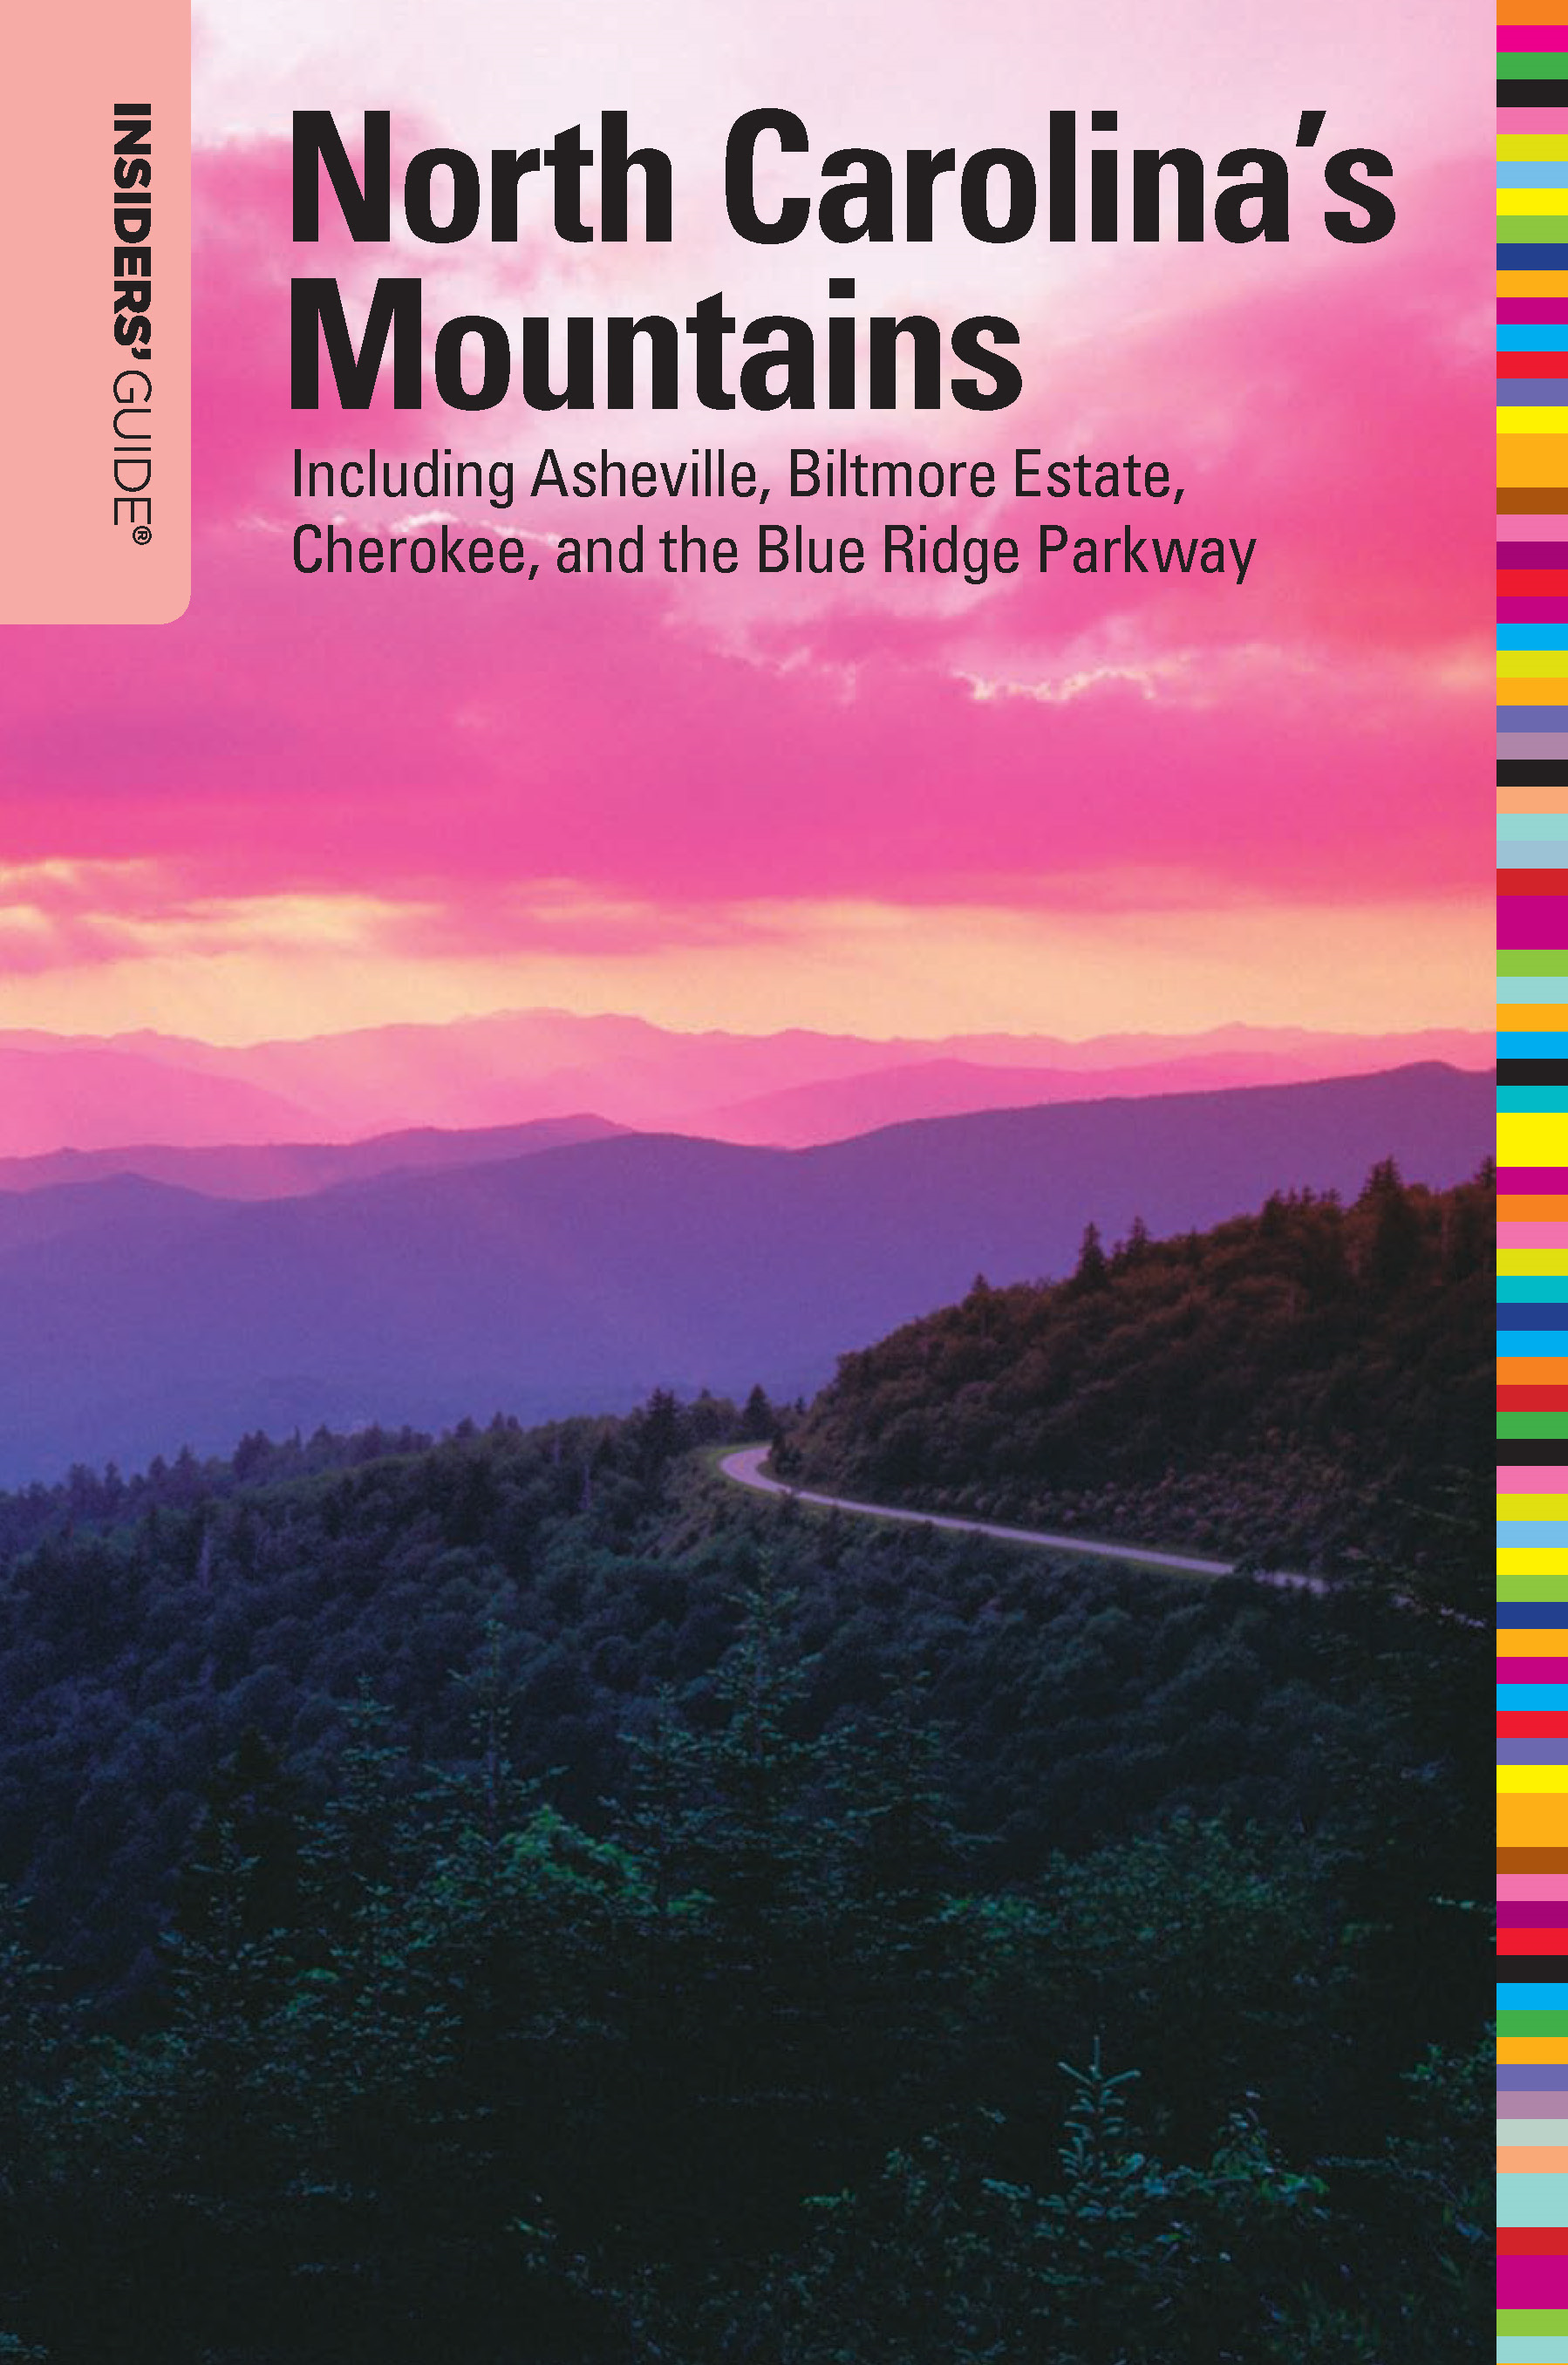 Kenneth L. Richards  Constance Richards - Insiders' Guide® to North Carolina's Mountains, 10th